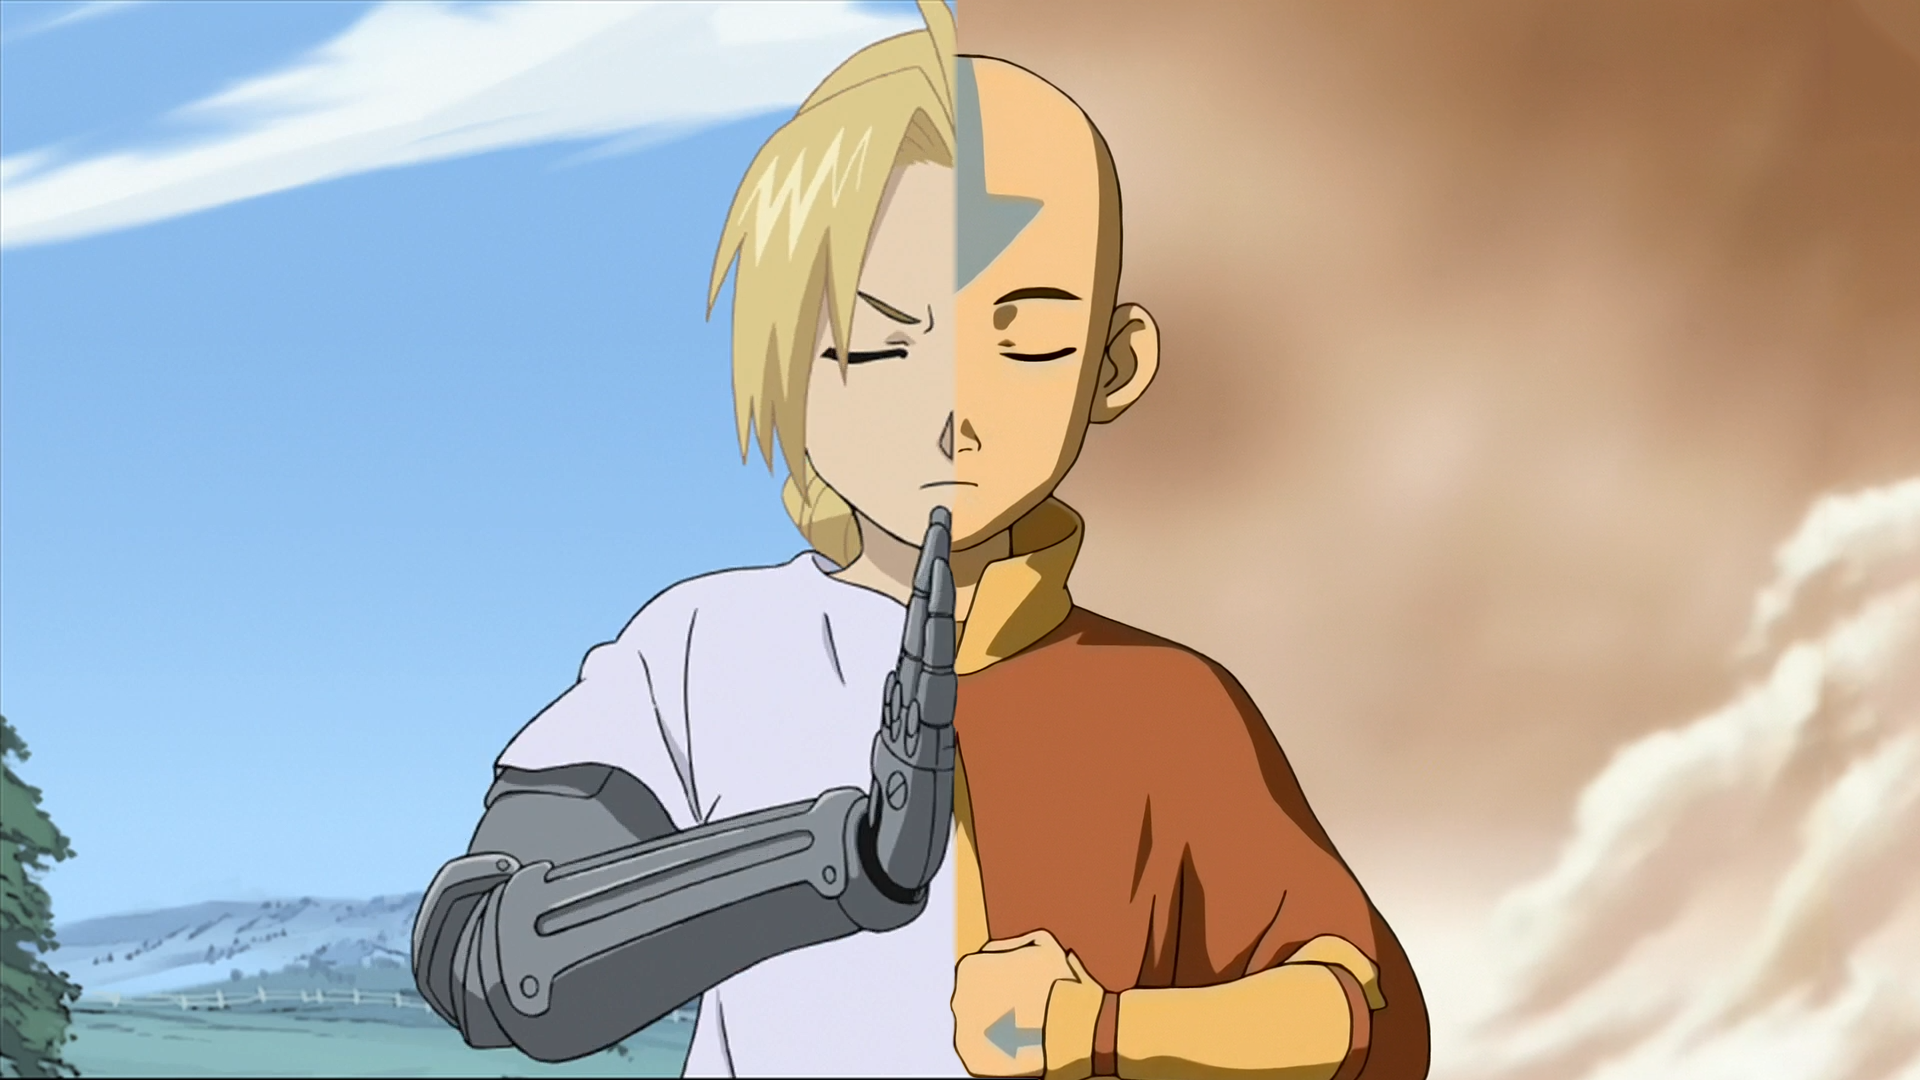 Anime or Cartoon? Edward from Fullmetal Alchemist and Aang from Avatar